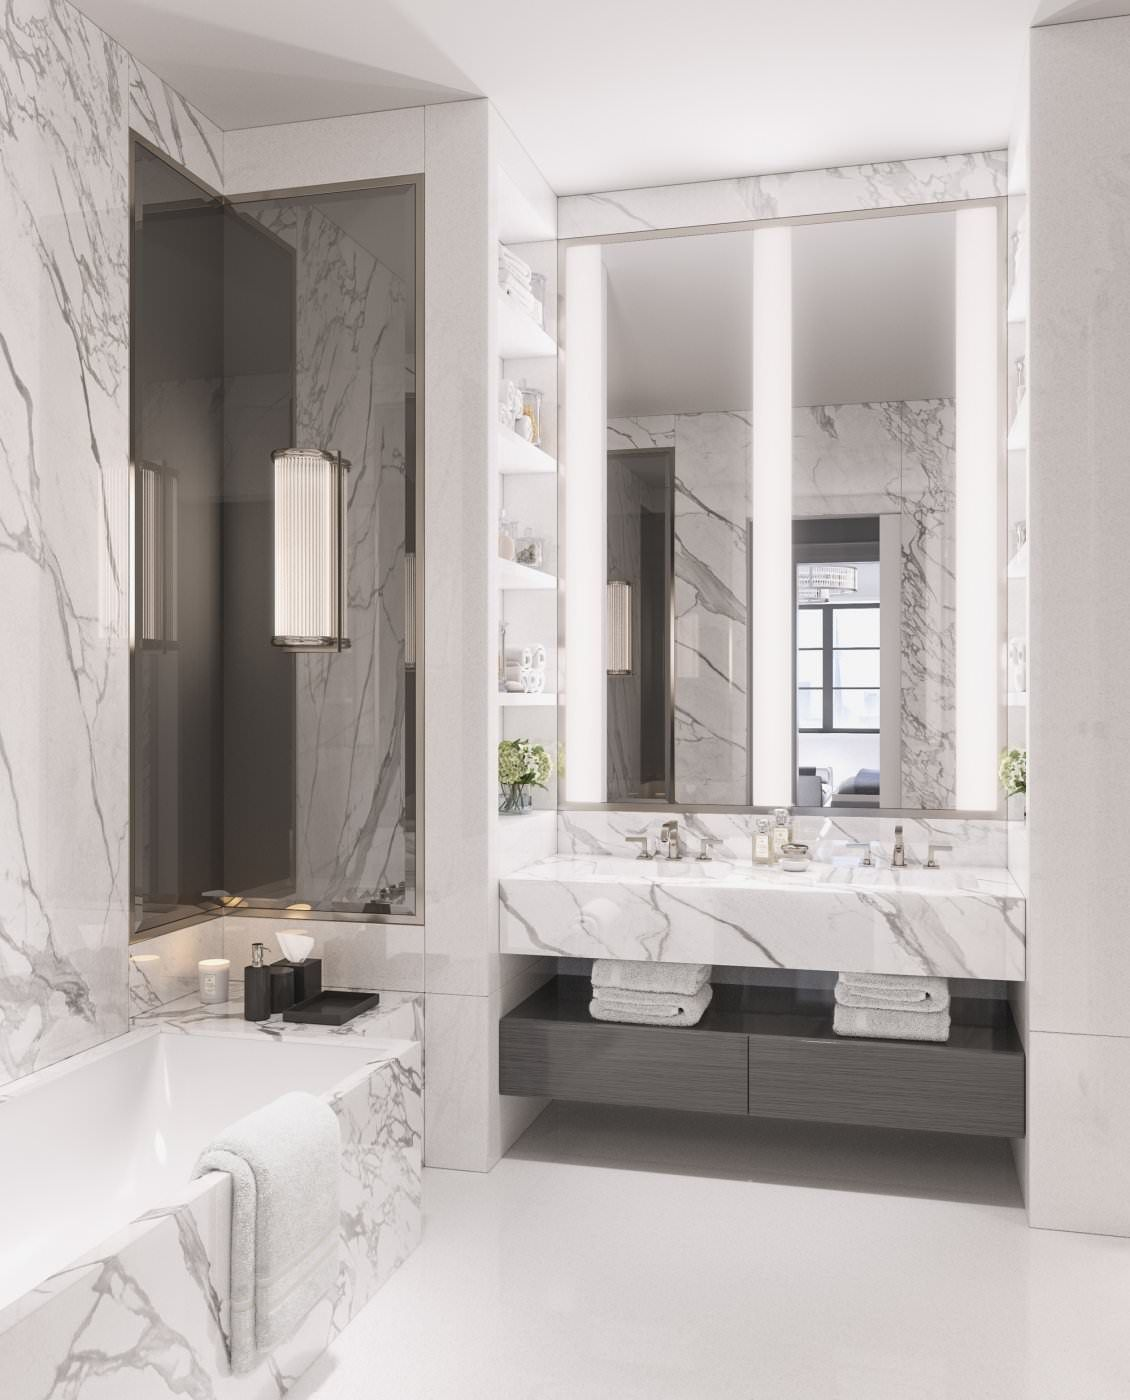 Two Bedroom Apartments In New York City: Luxury Interior Design Of Apartment In Brownstone